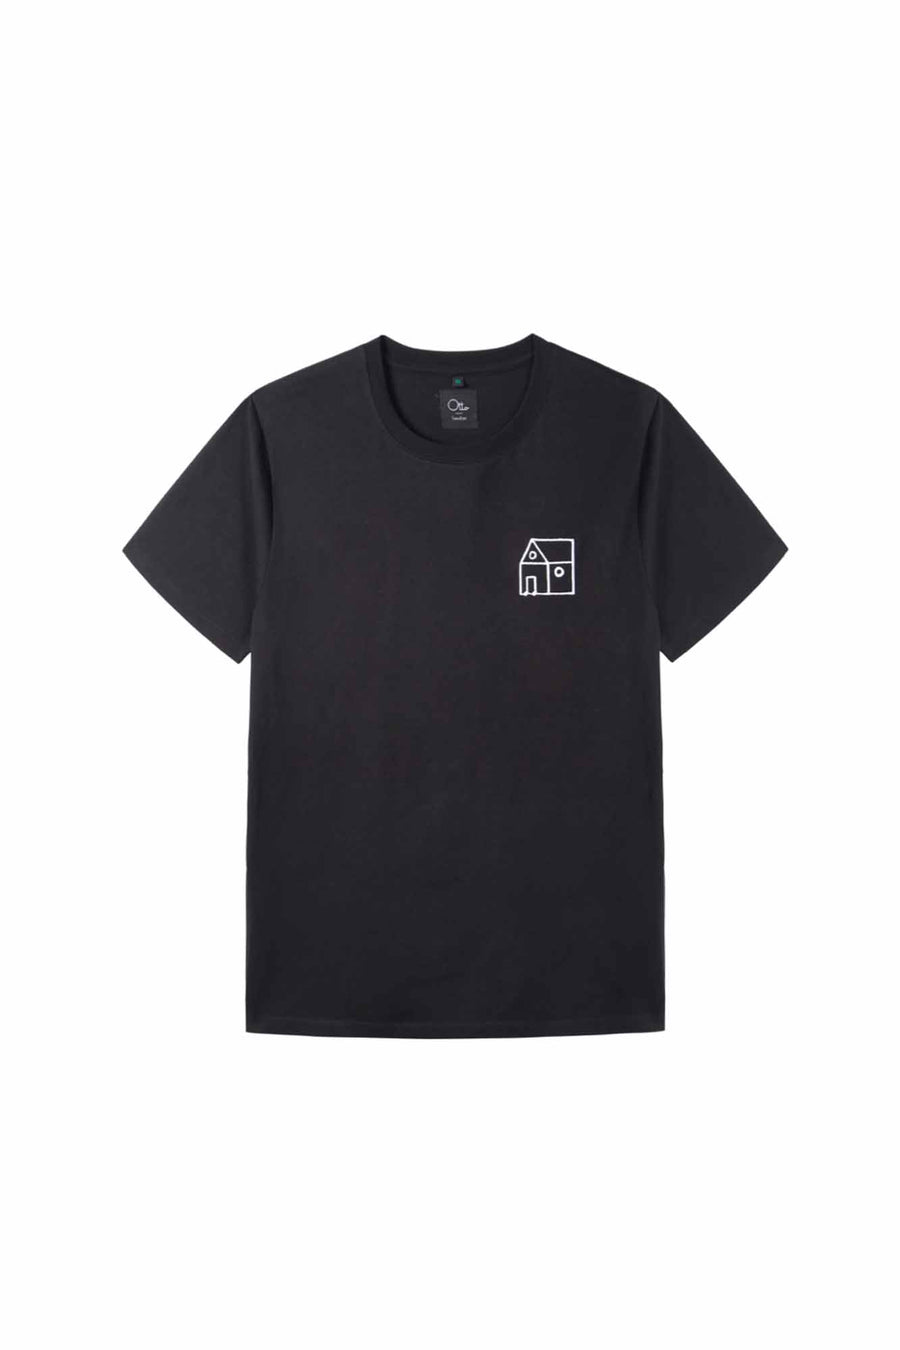 RAA x Otto London Tee - Black